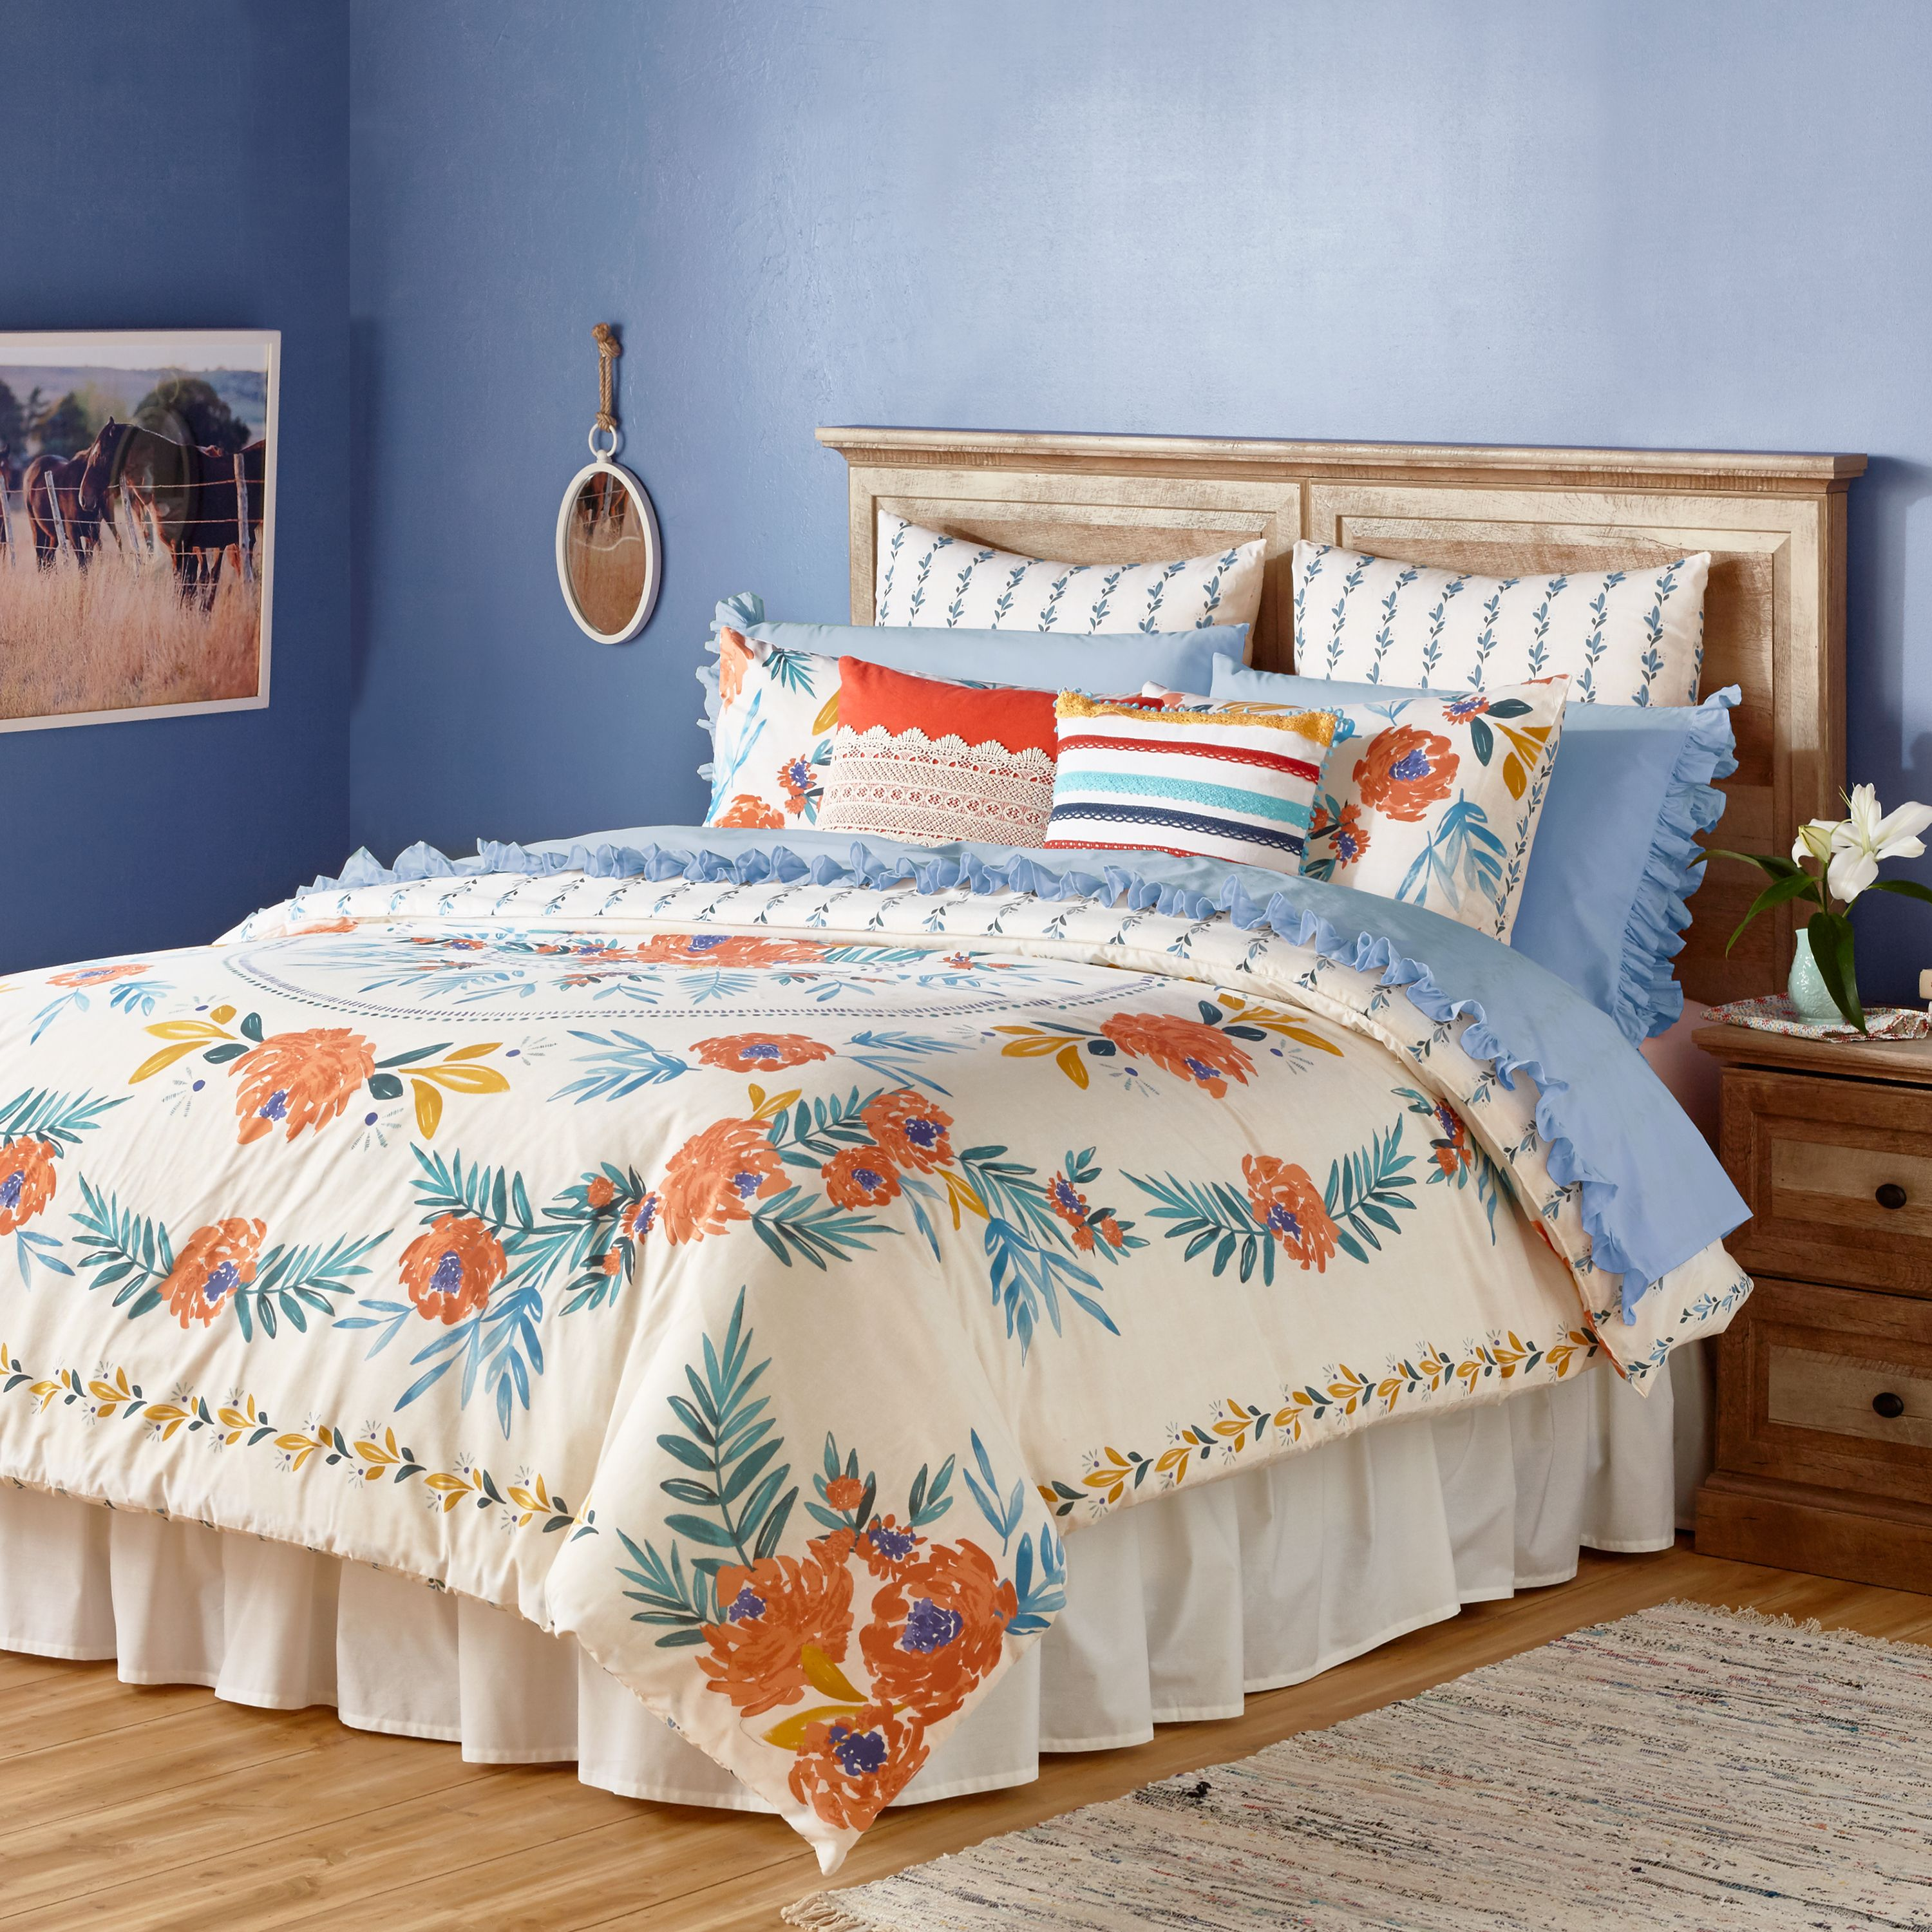 The Pioneer Woman Floral Medallion Duvet Cover, Ivory - Walmart com